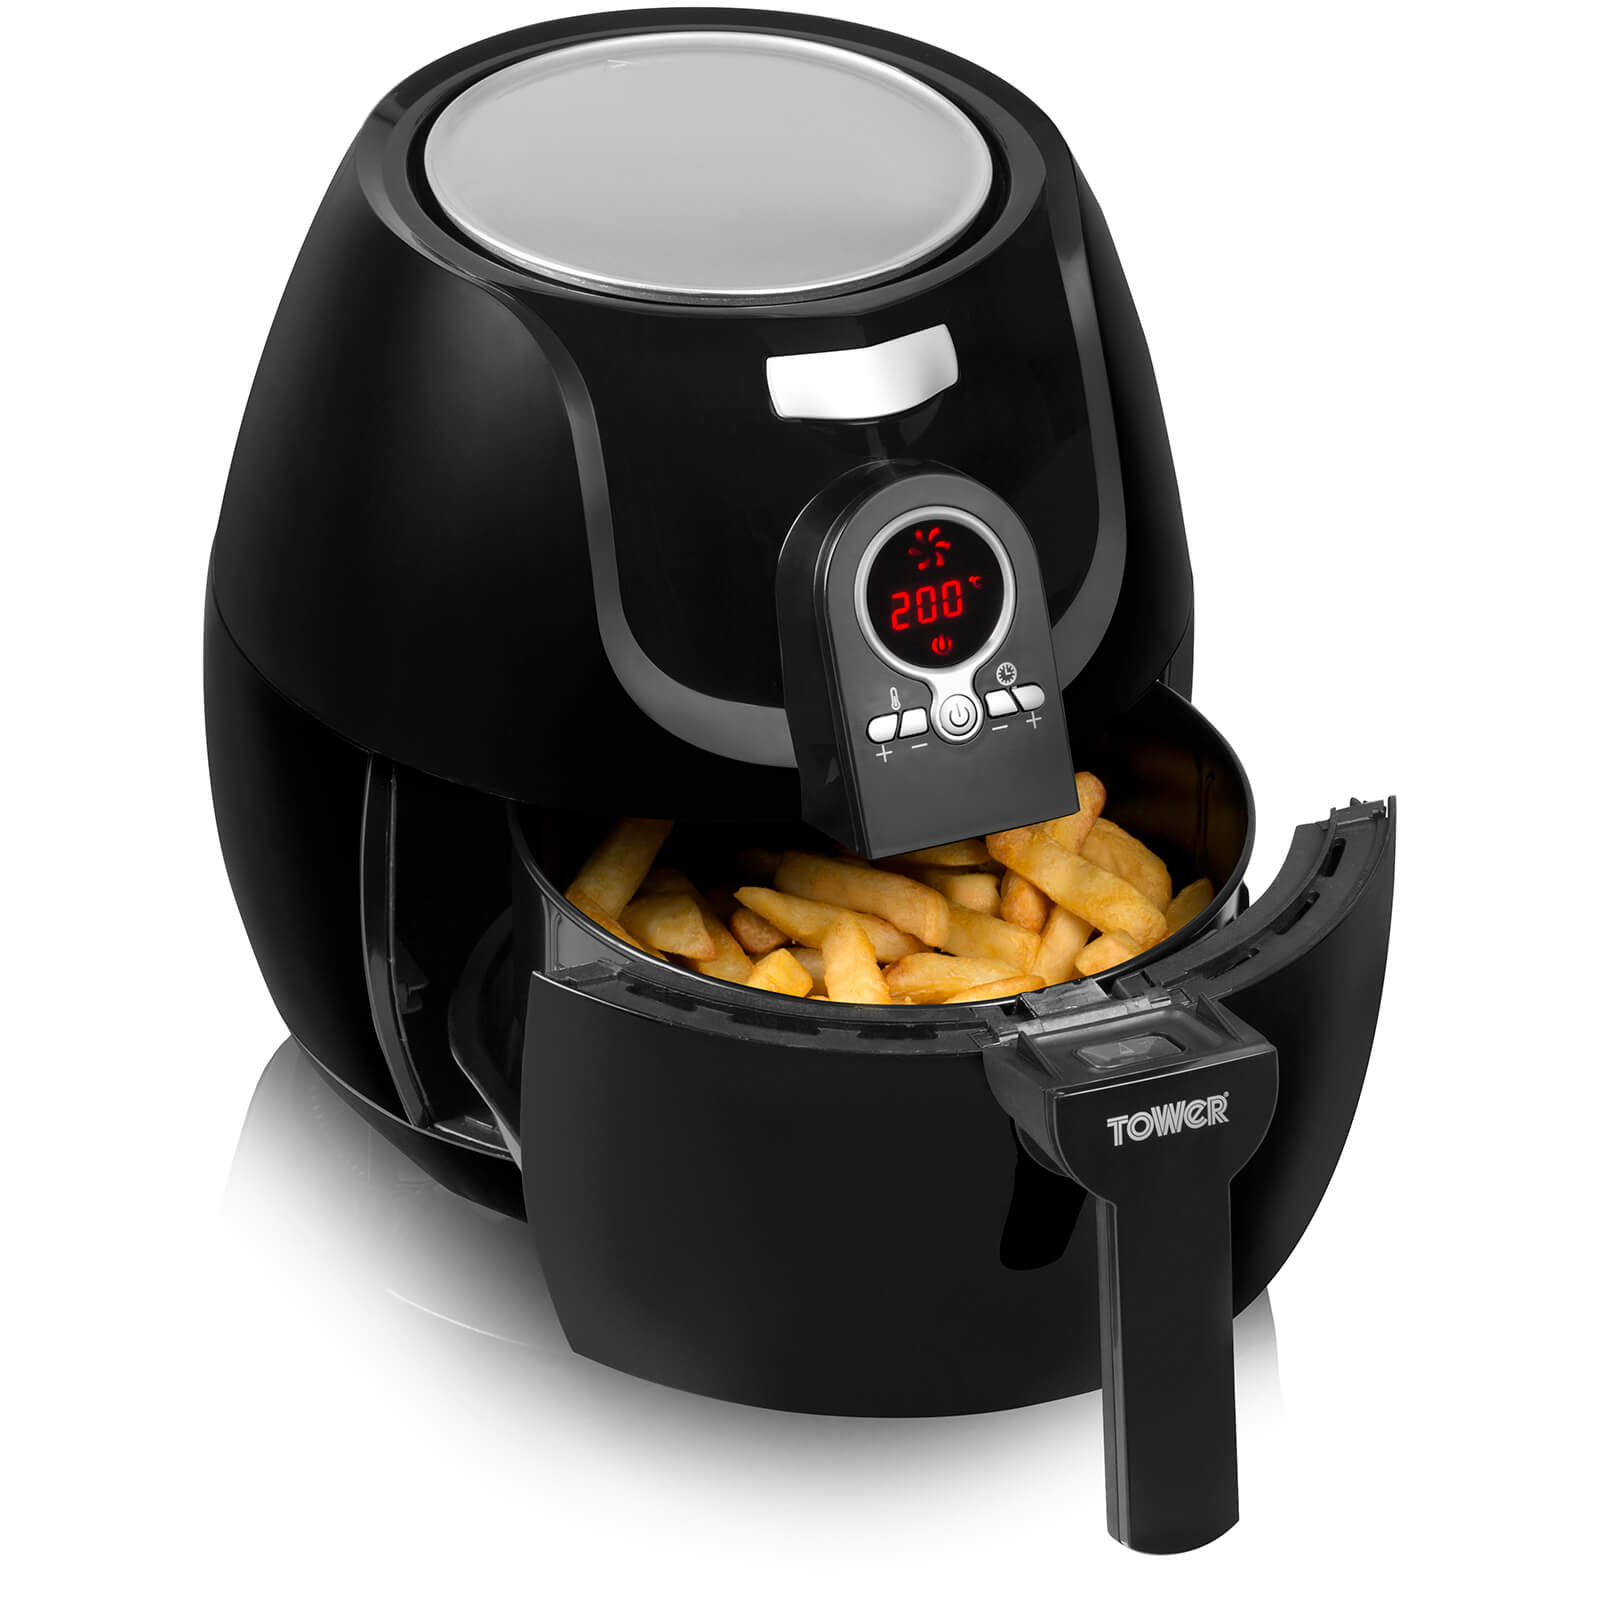 Tower T14004 Low Fat Air Fryer - Black